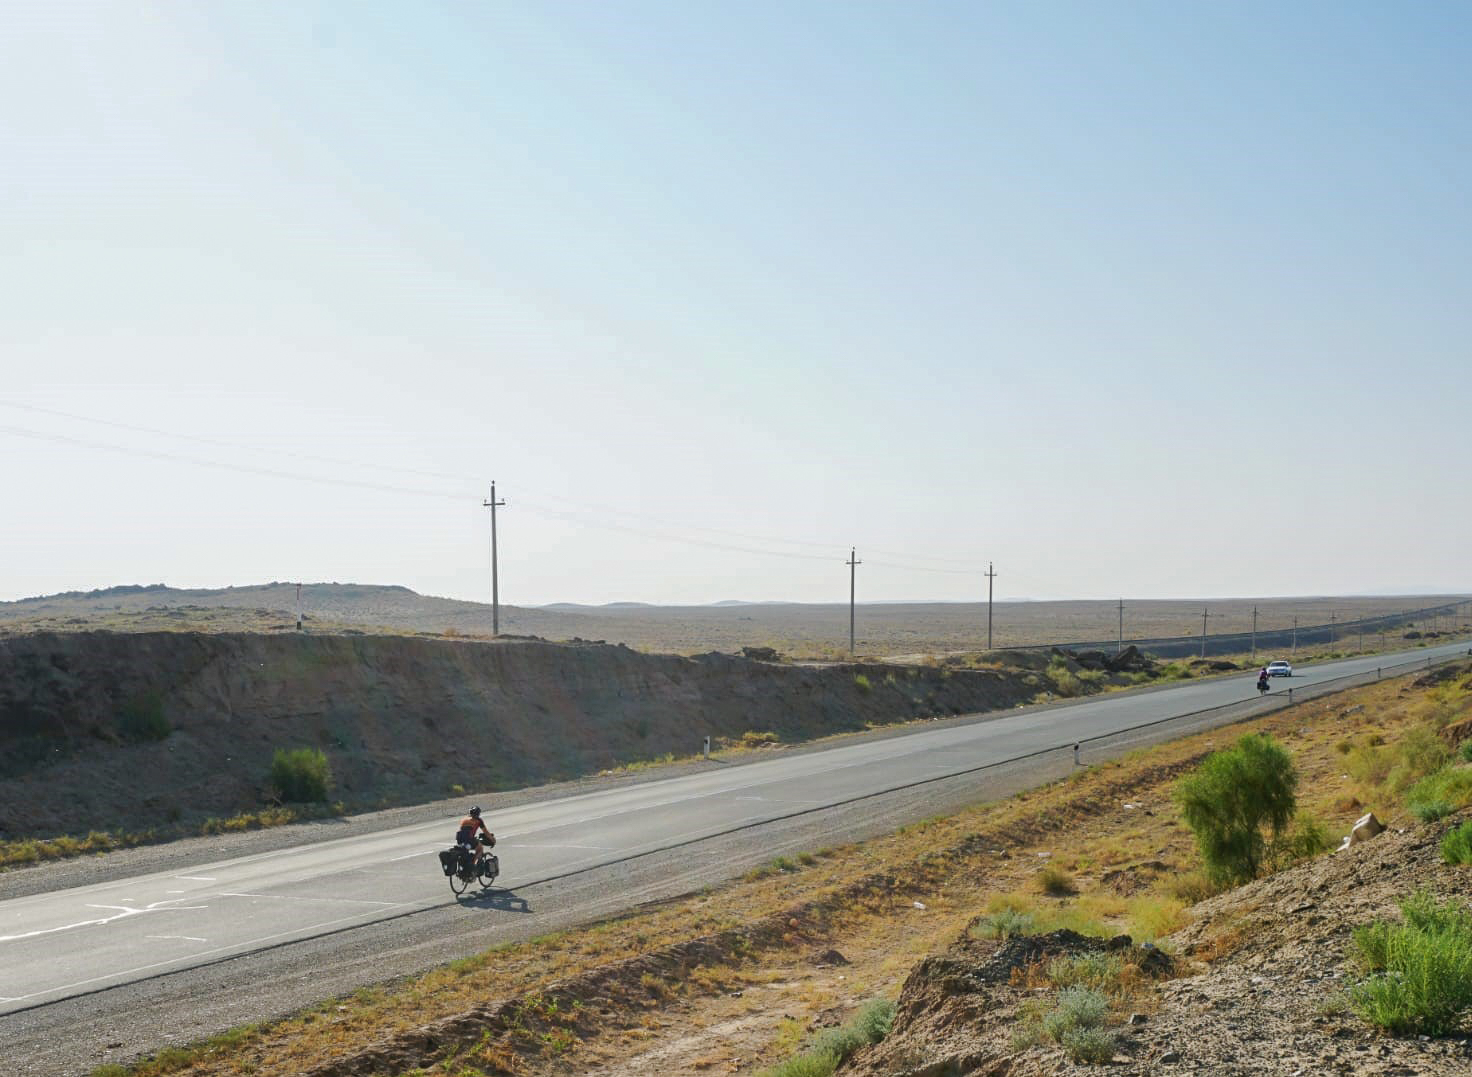 Riding a long lonely road through the desert